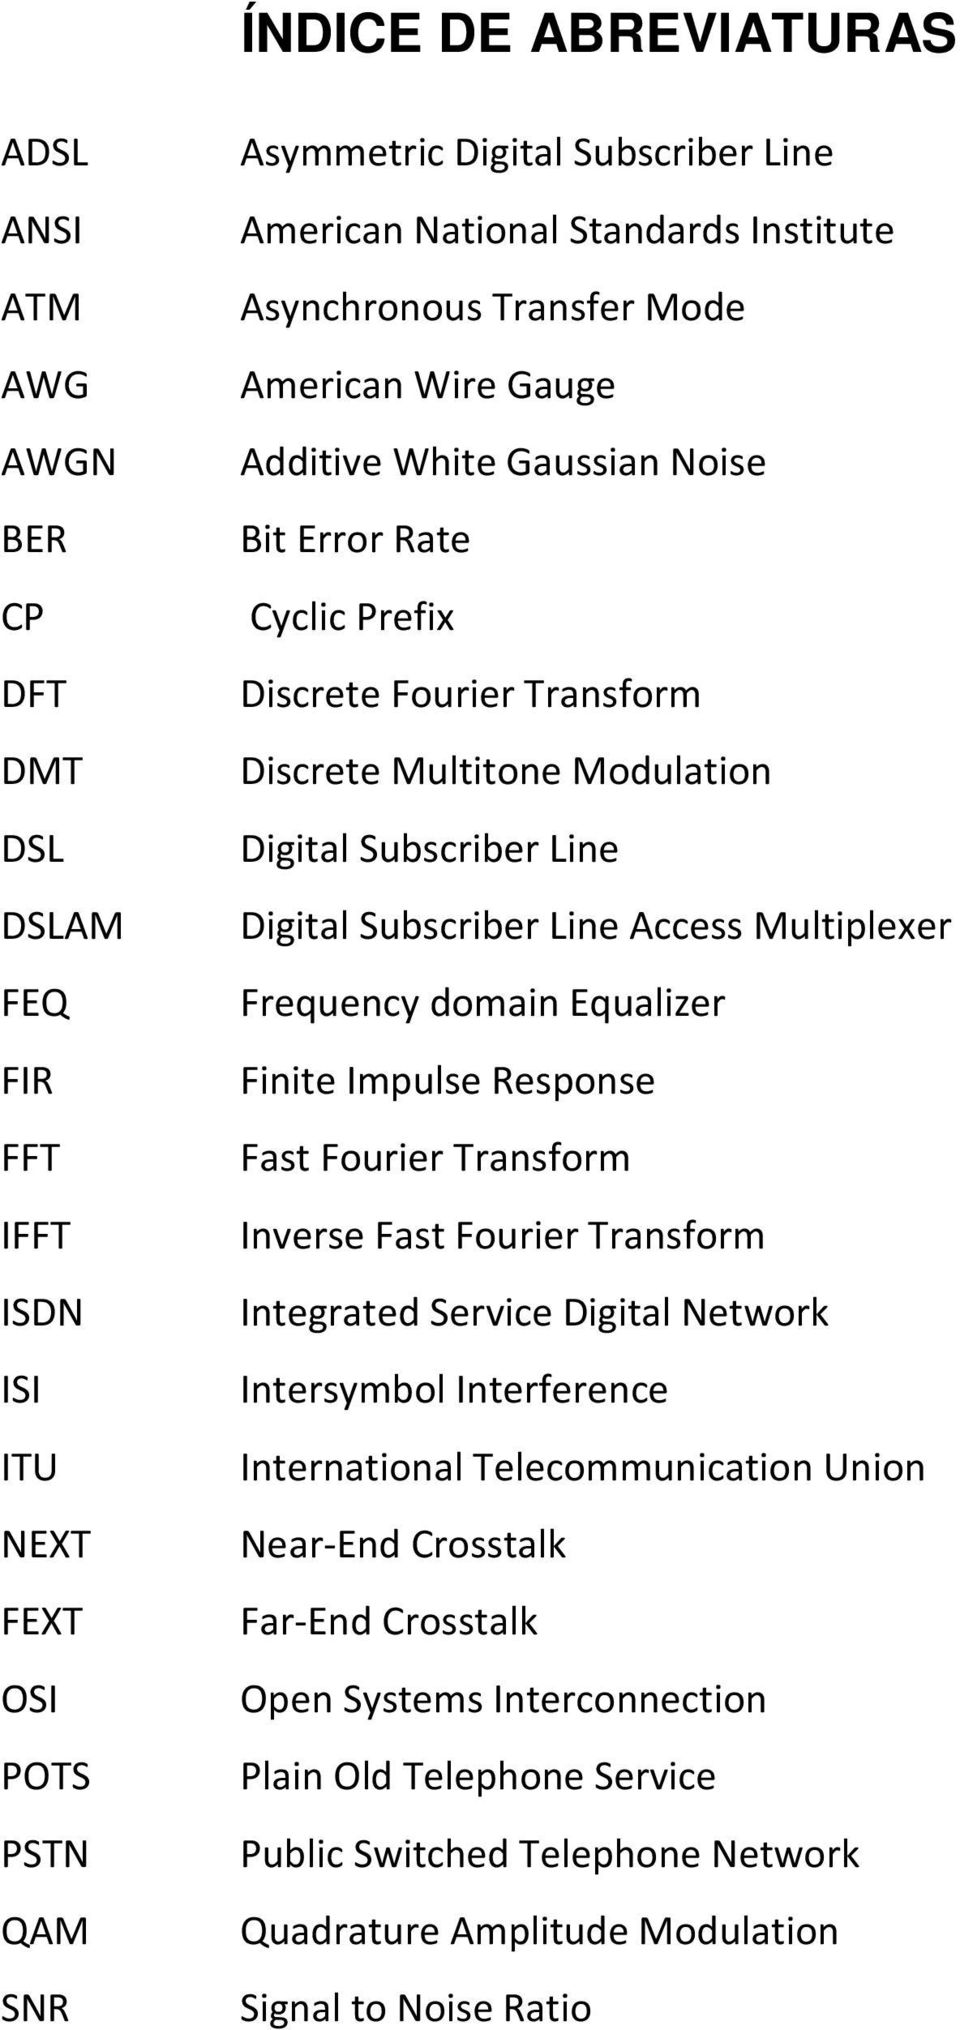 Digital Subscriber Line Access Multiplexer Frequency domain Equalizer Finite Impulse Response Fast Fourier Transform Inverse Fast Fourier Transform Integrated Service Digital Network Intersymbol